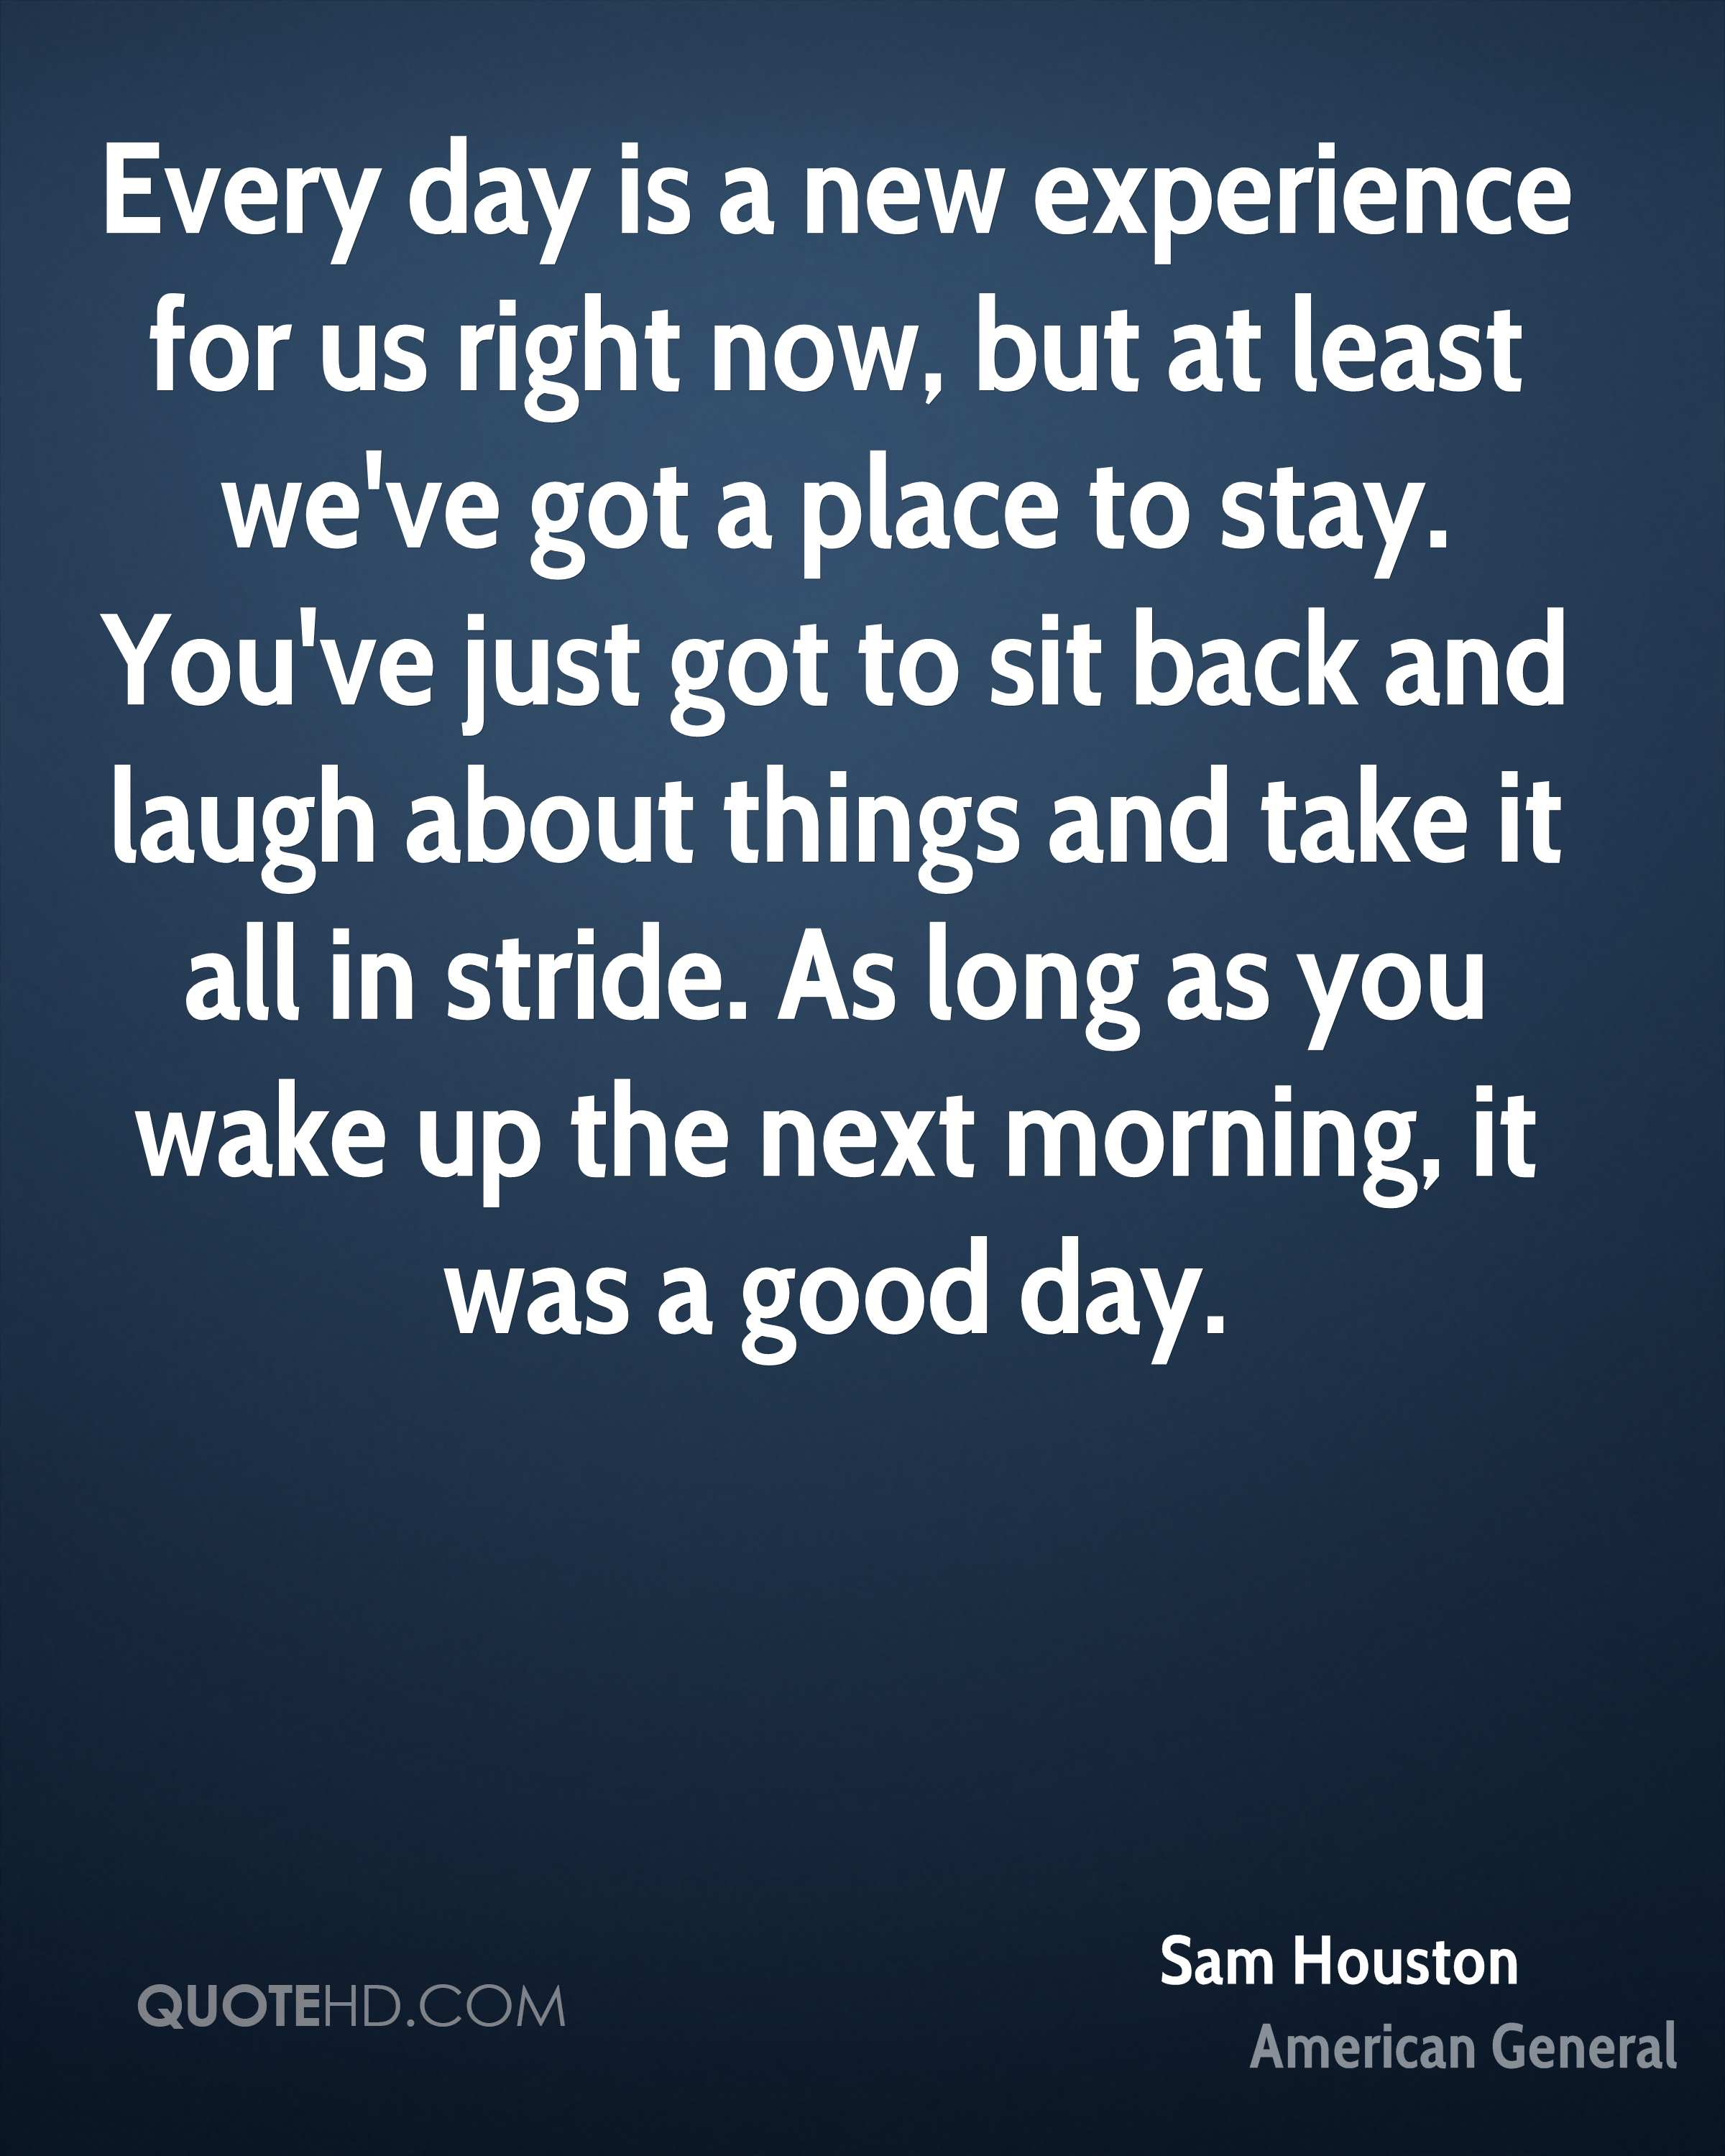 Every day is a new experience for us right now, but at least we've got a place to stay. You've just got to sit back and laugh about things and take it all in stride. As long as you wake up the next morning, it was a good day.